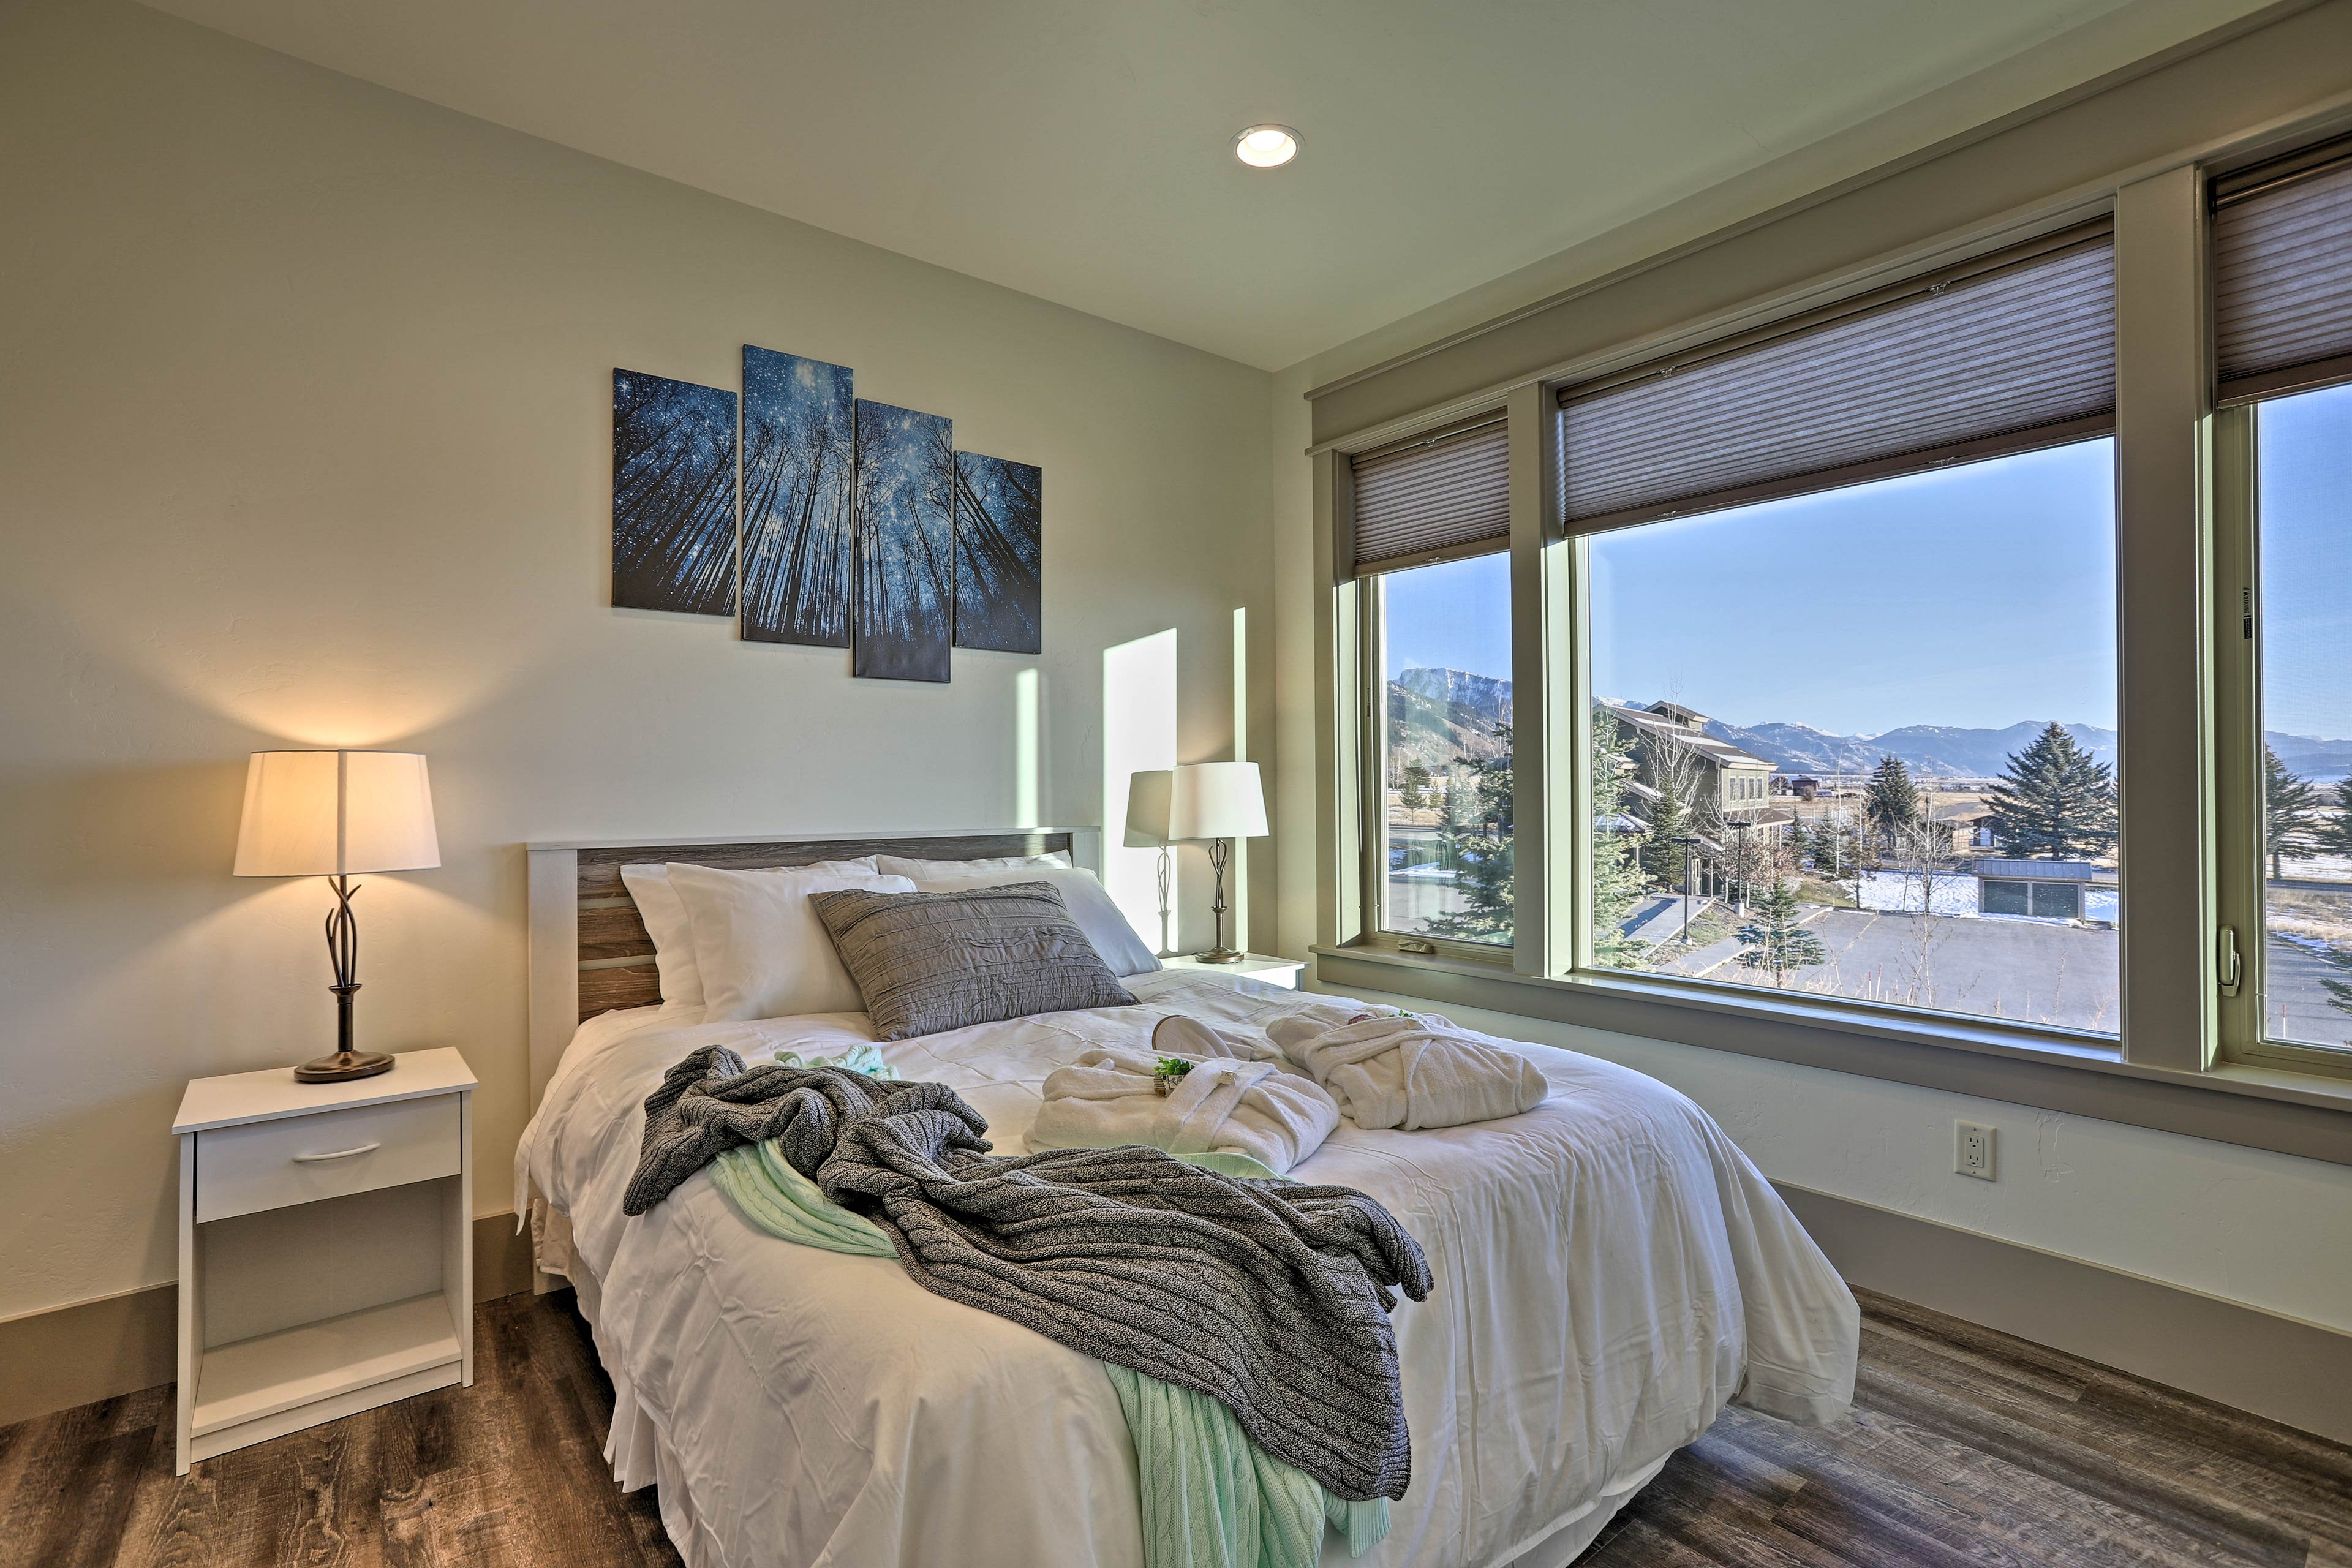 The home's third bedroom features a queen bed for 2.